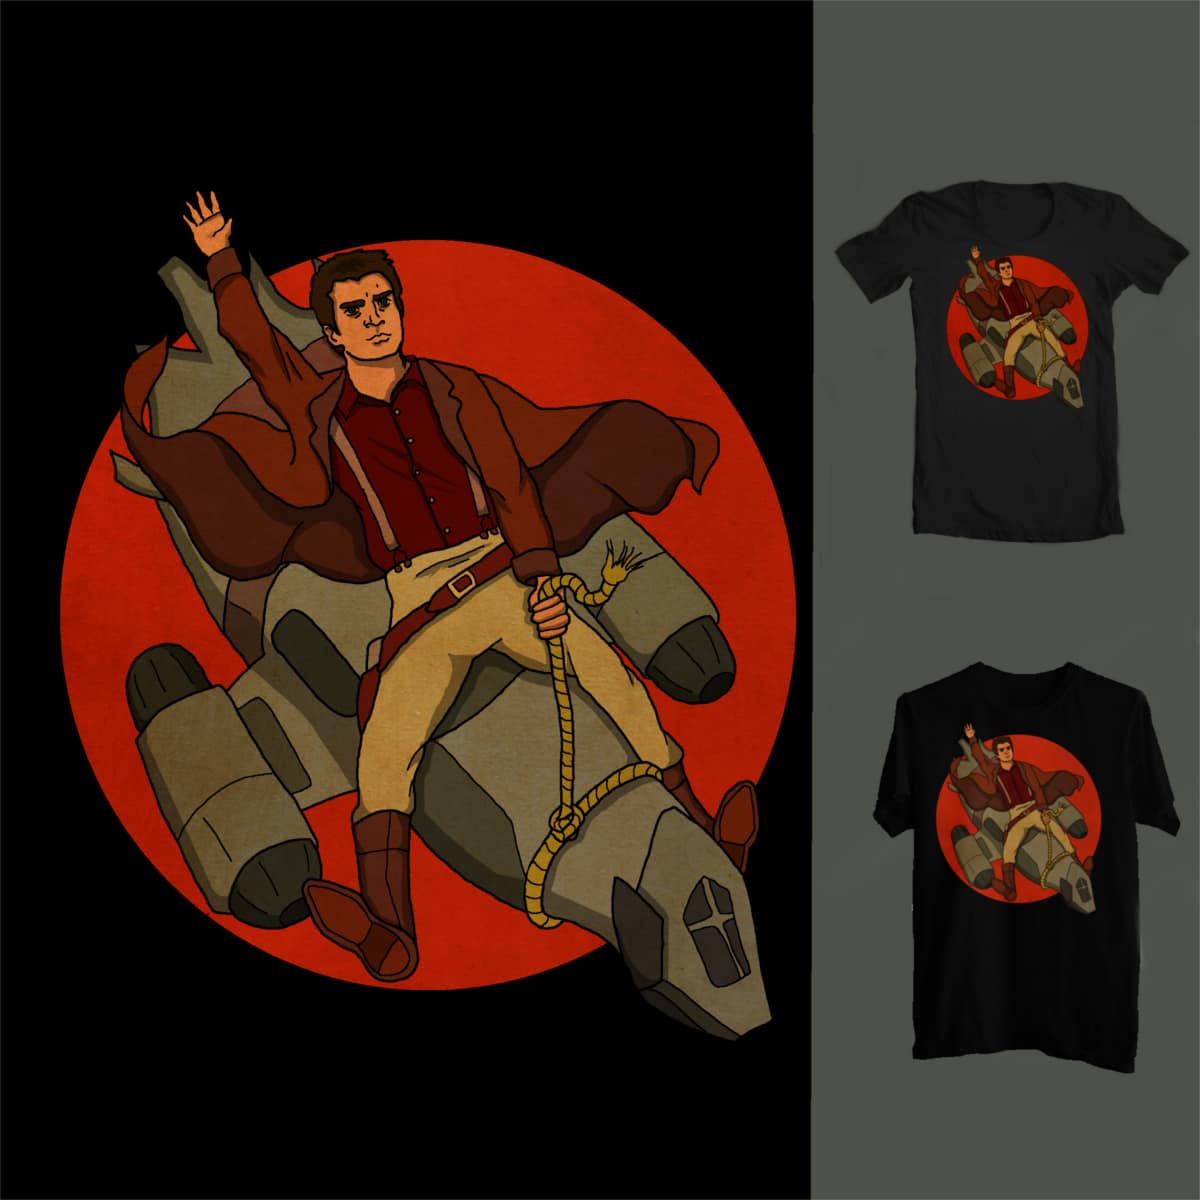 ... space cowboy? by linnfrasedisabled on Threadless